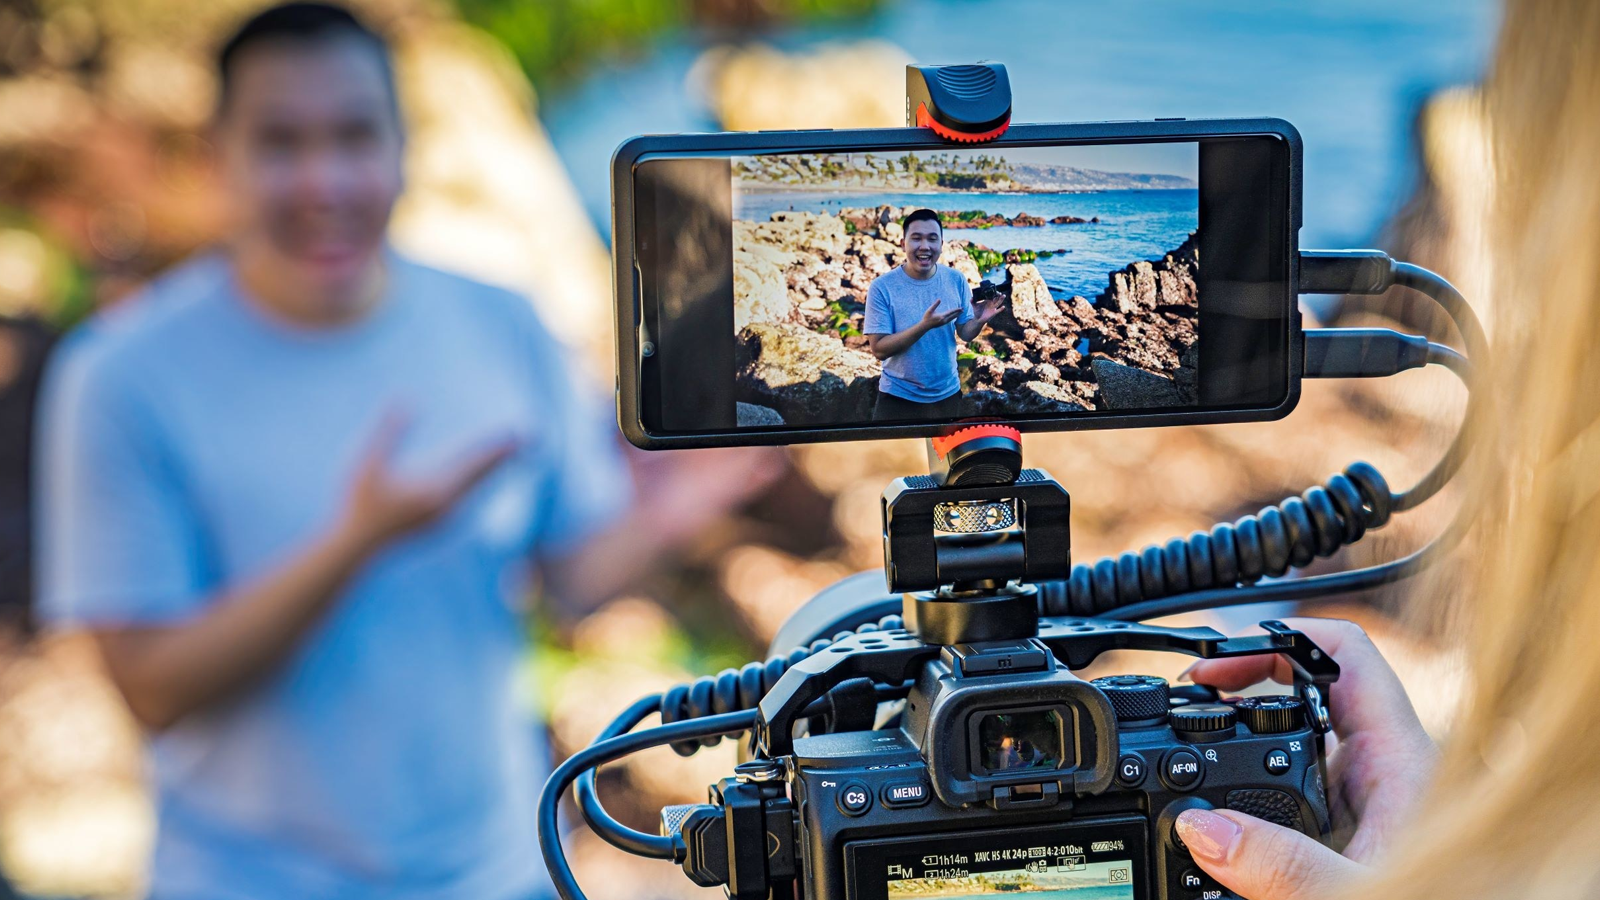 Sony's $2,500 Smartphone Is a Wild Attempt to Revolutionize Livestreaming